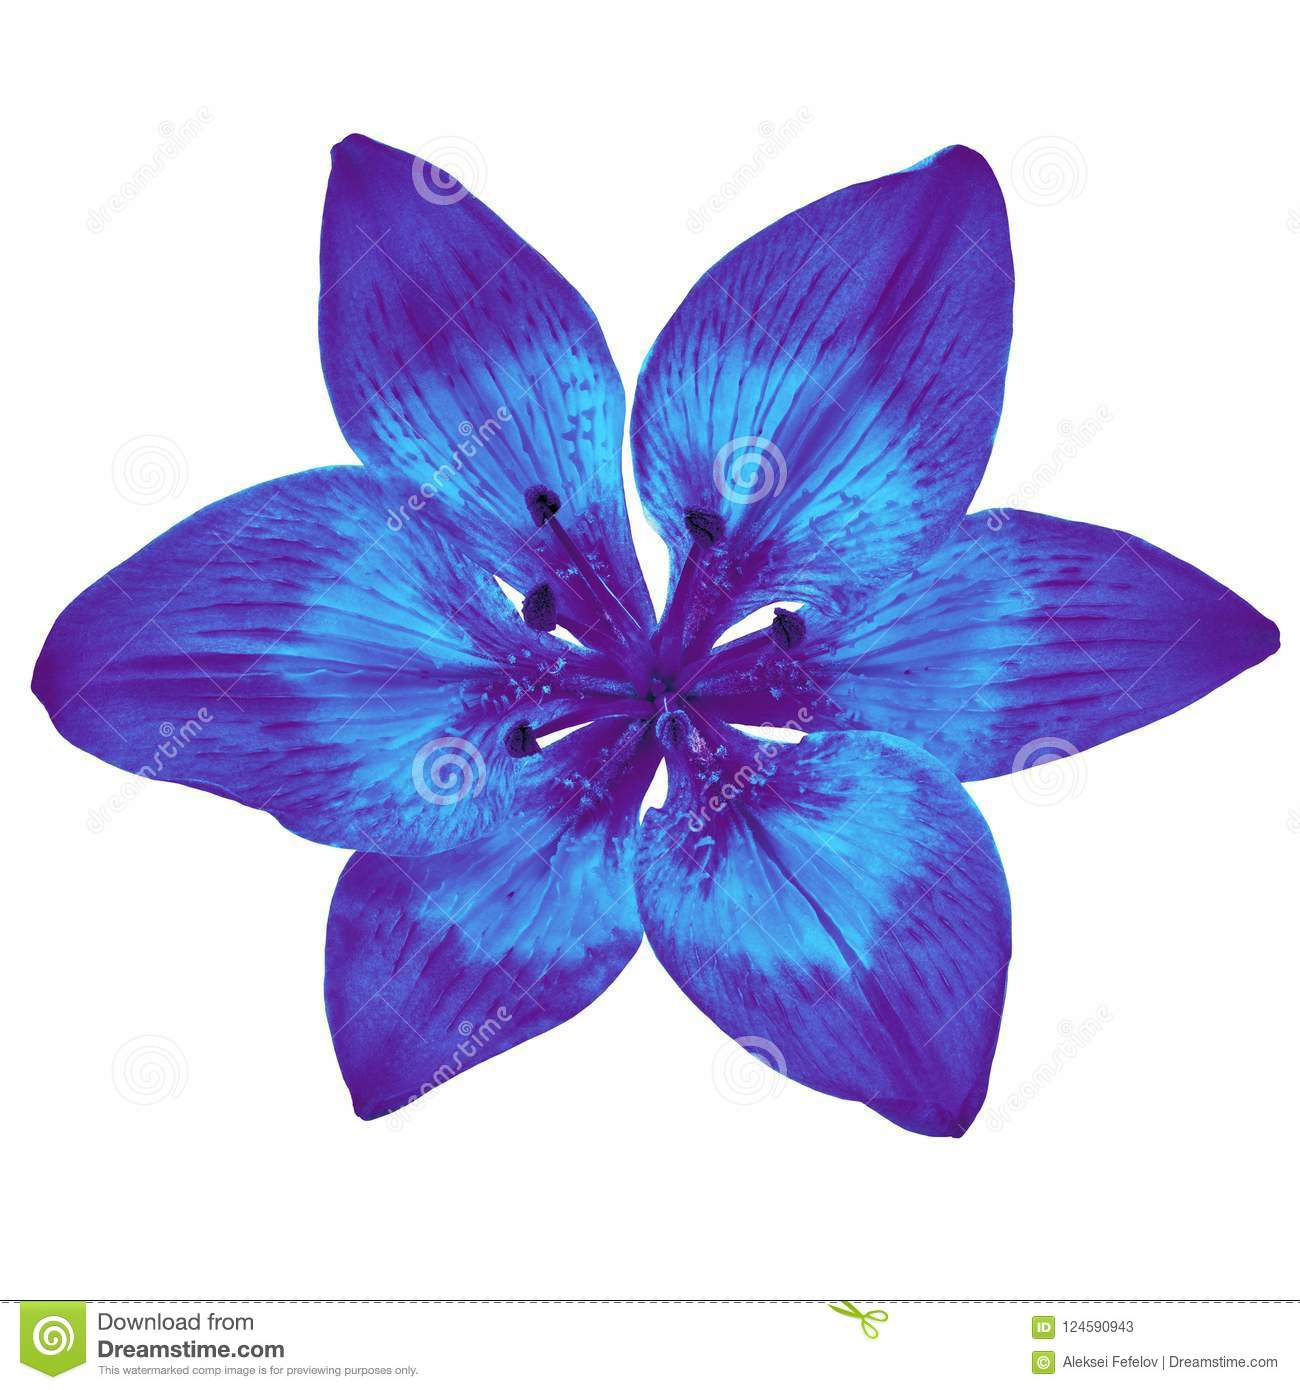 Flower indigo blue lily isolated on white background close up flower indigo blue lily isolated on white background close up izmirmasajfo